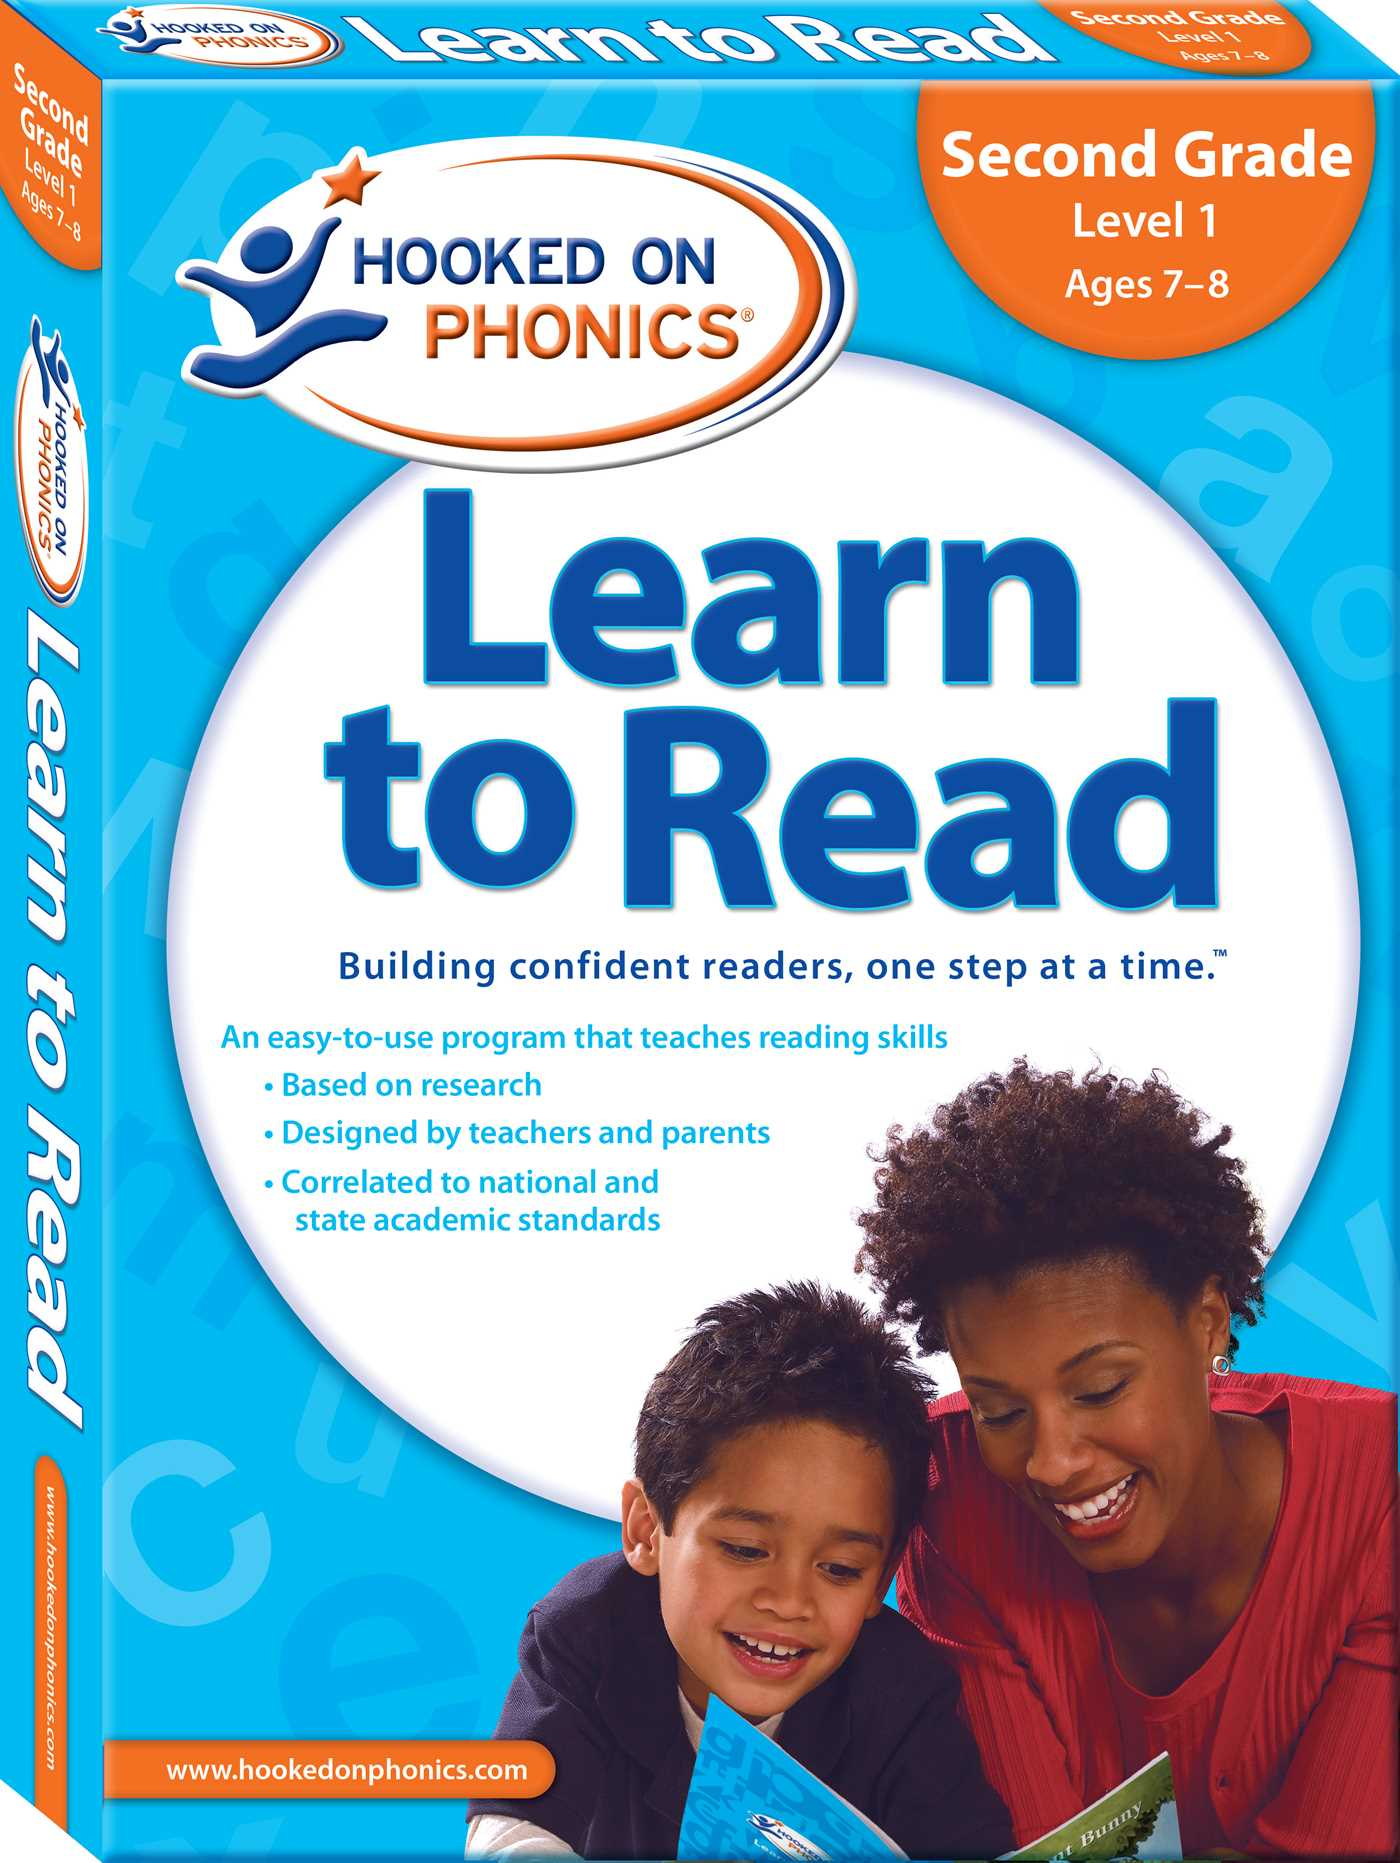 Hooked on phonics learn to read level 7 9781604991475 hr